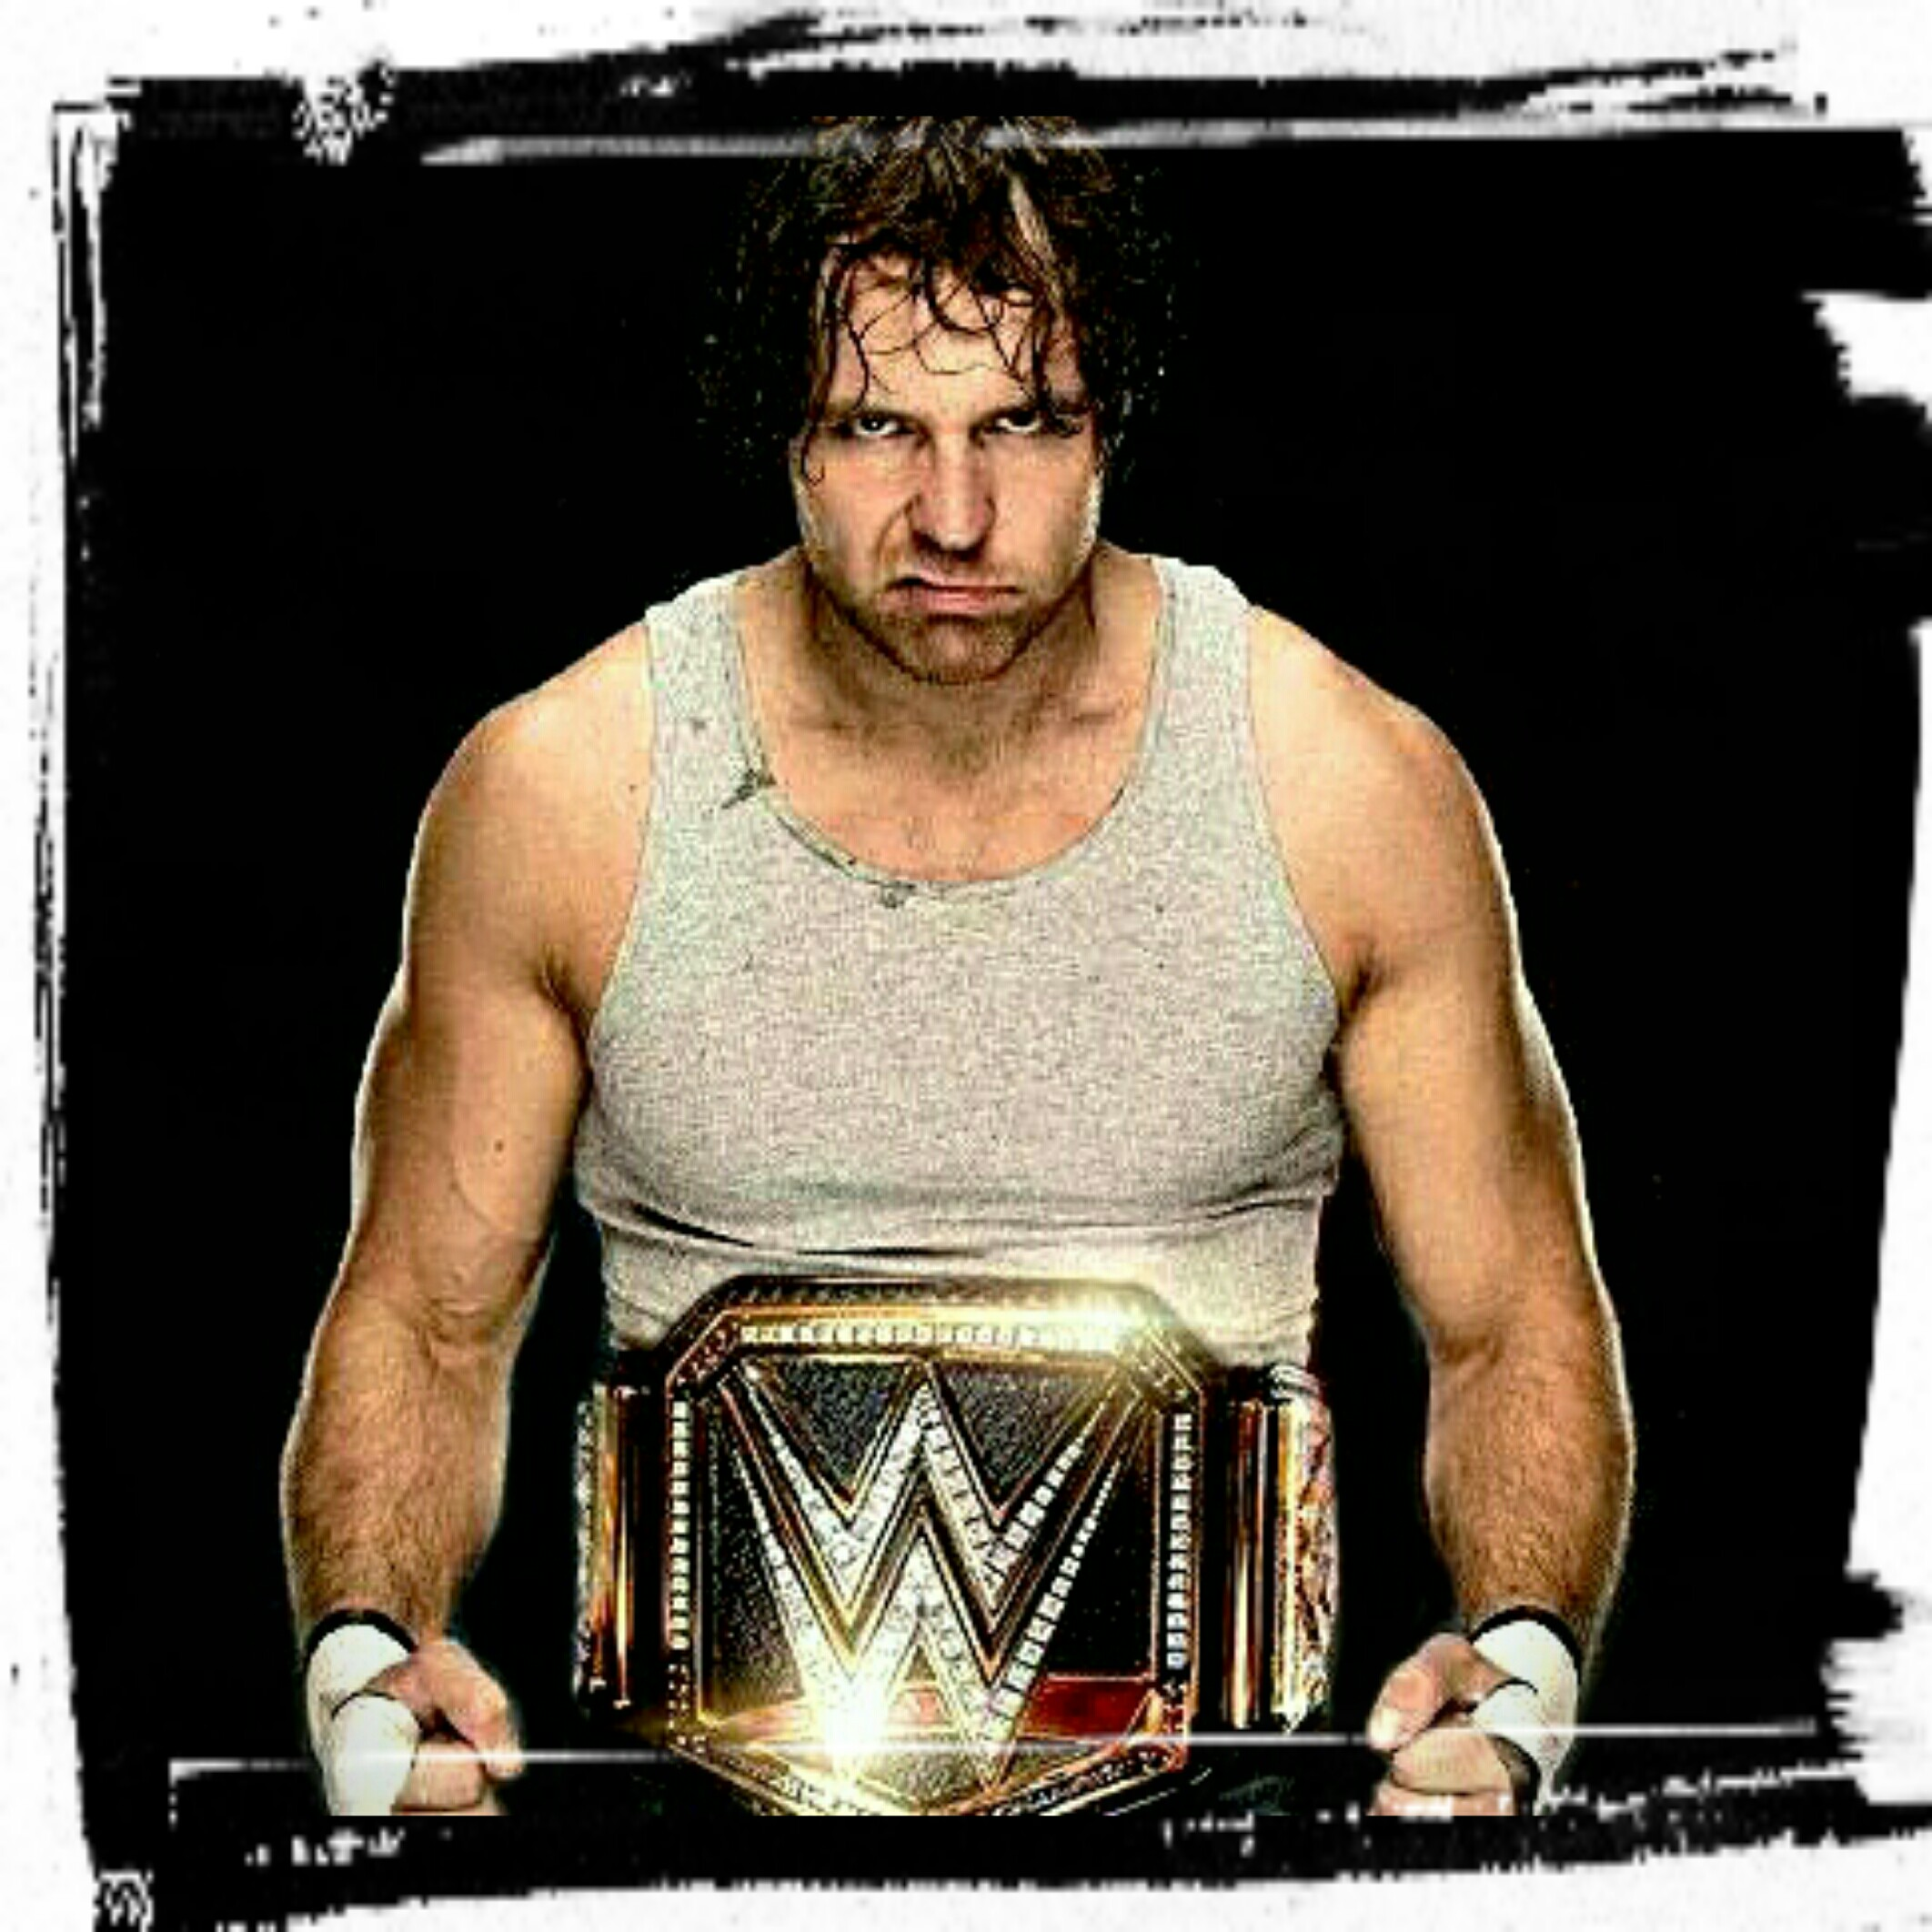 WWE Images Dean Ambrose HD Wallpaper And Background Photos